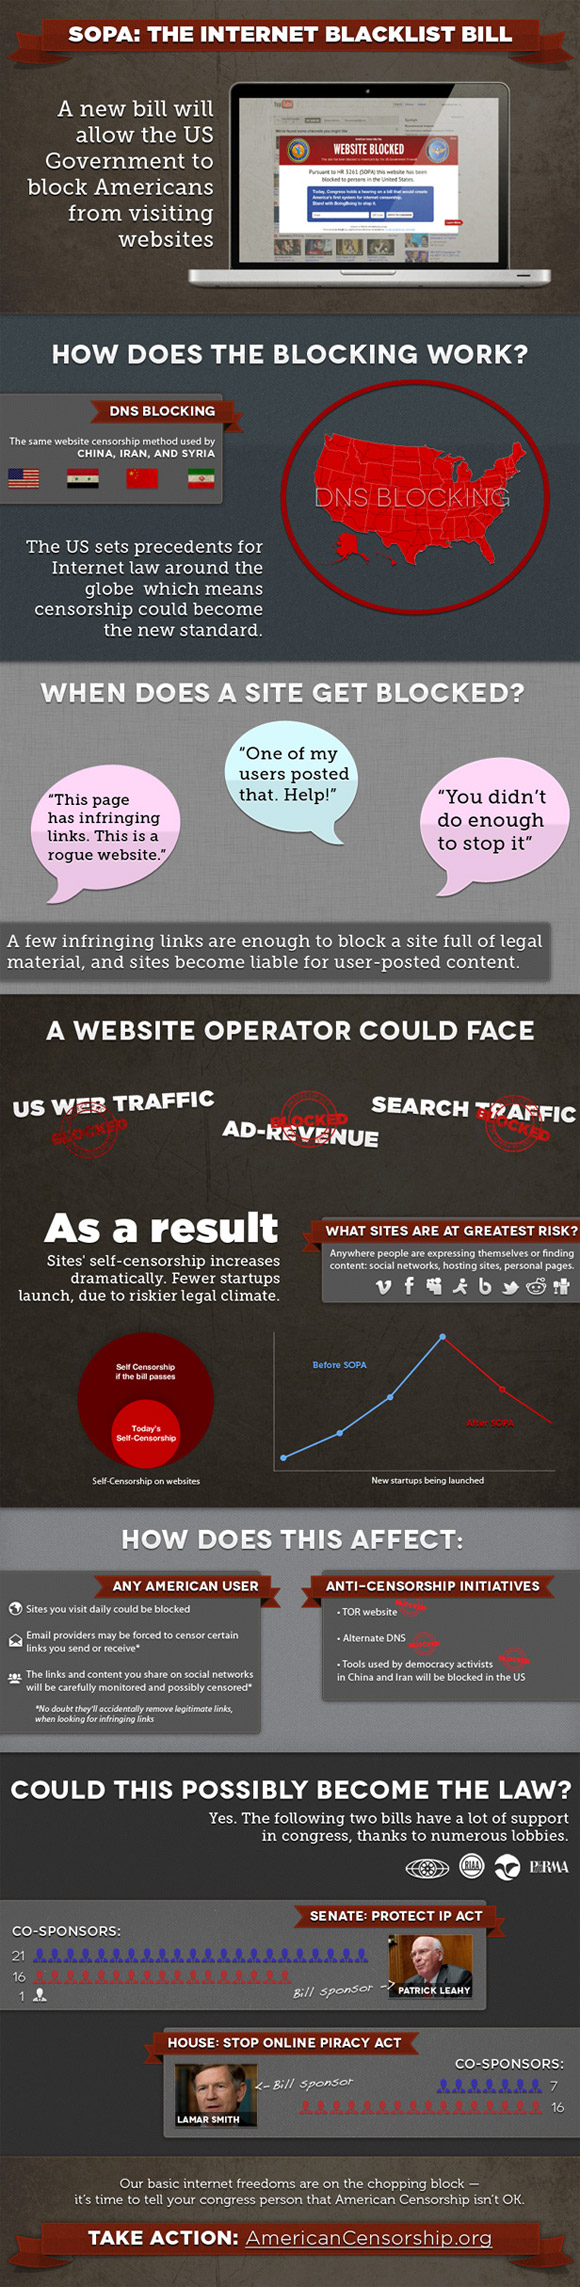 How does SOPA work? Infographic explains how websites will be blocked